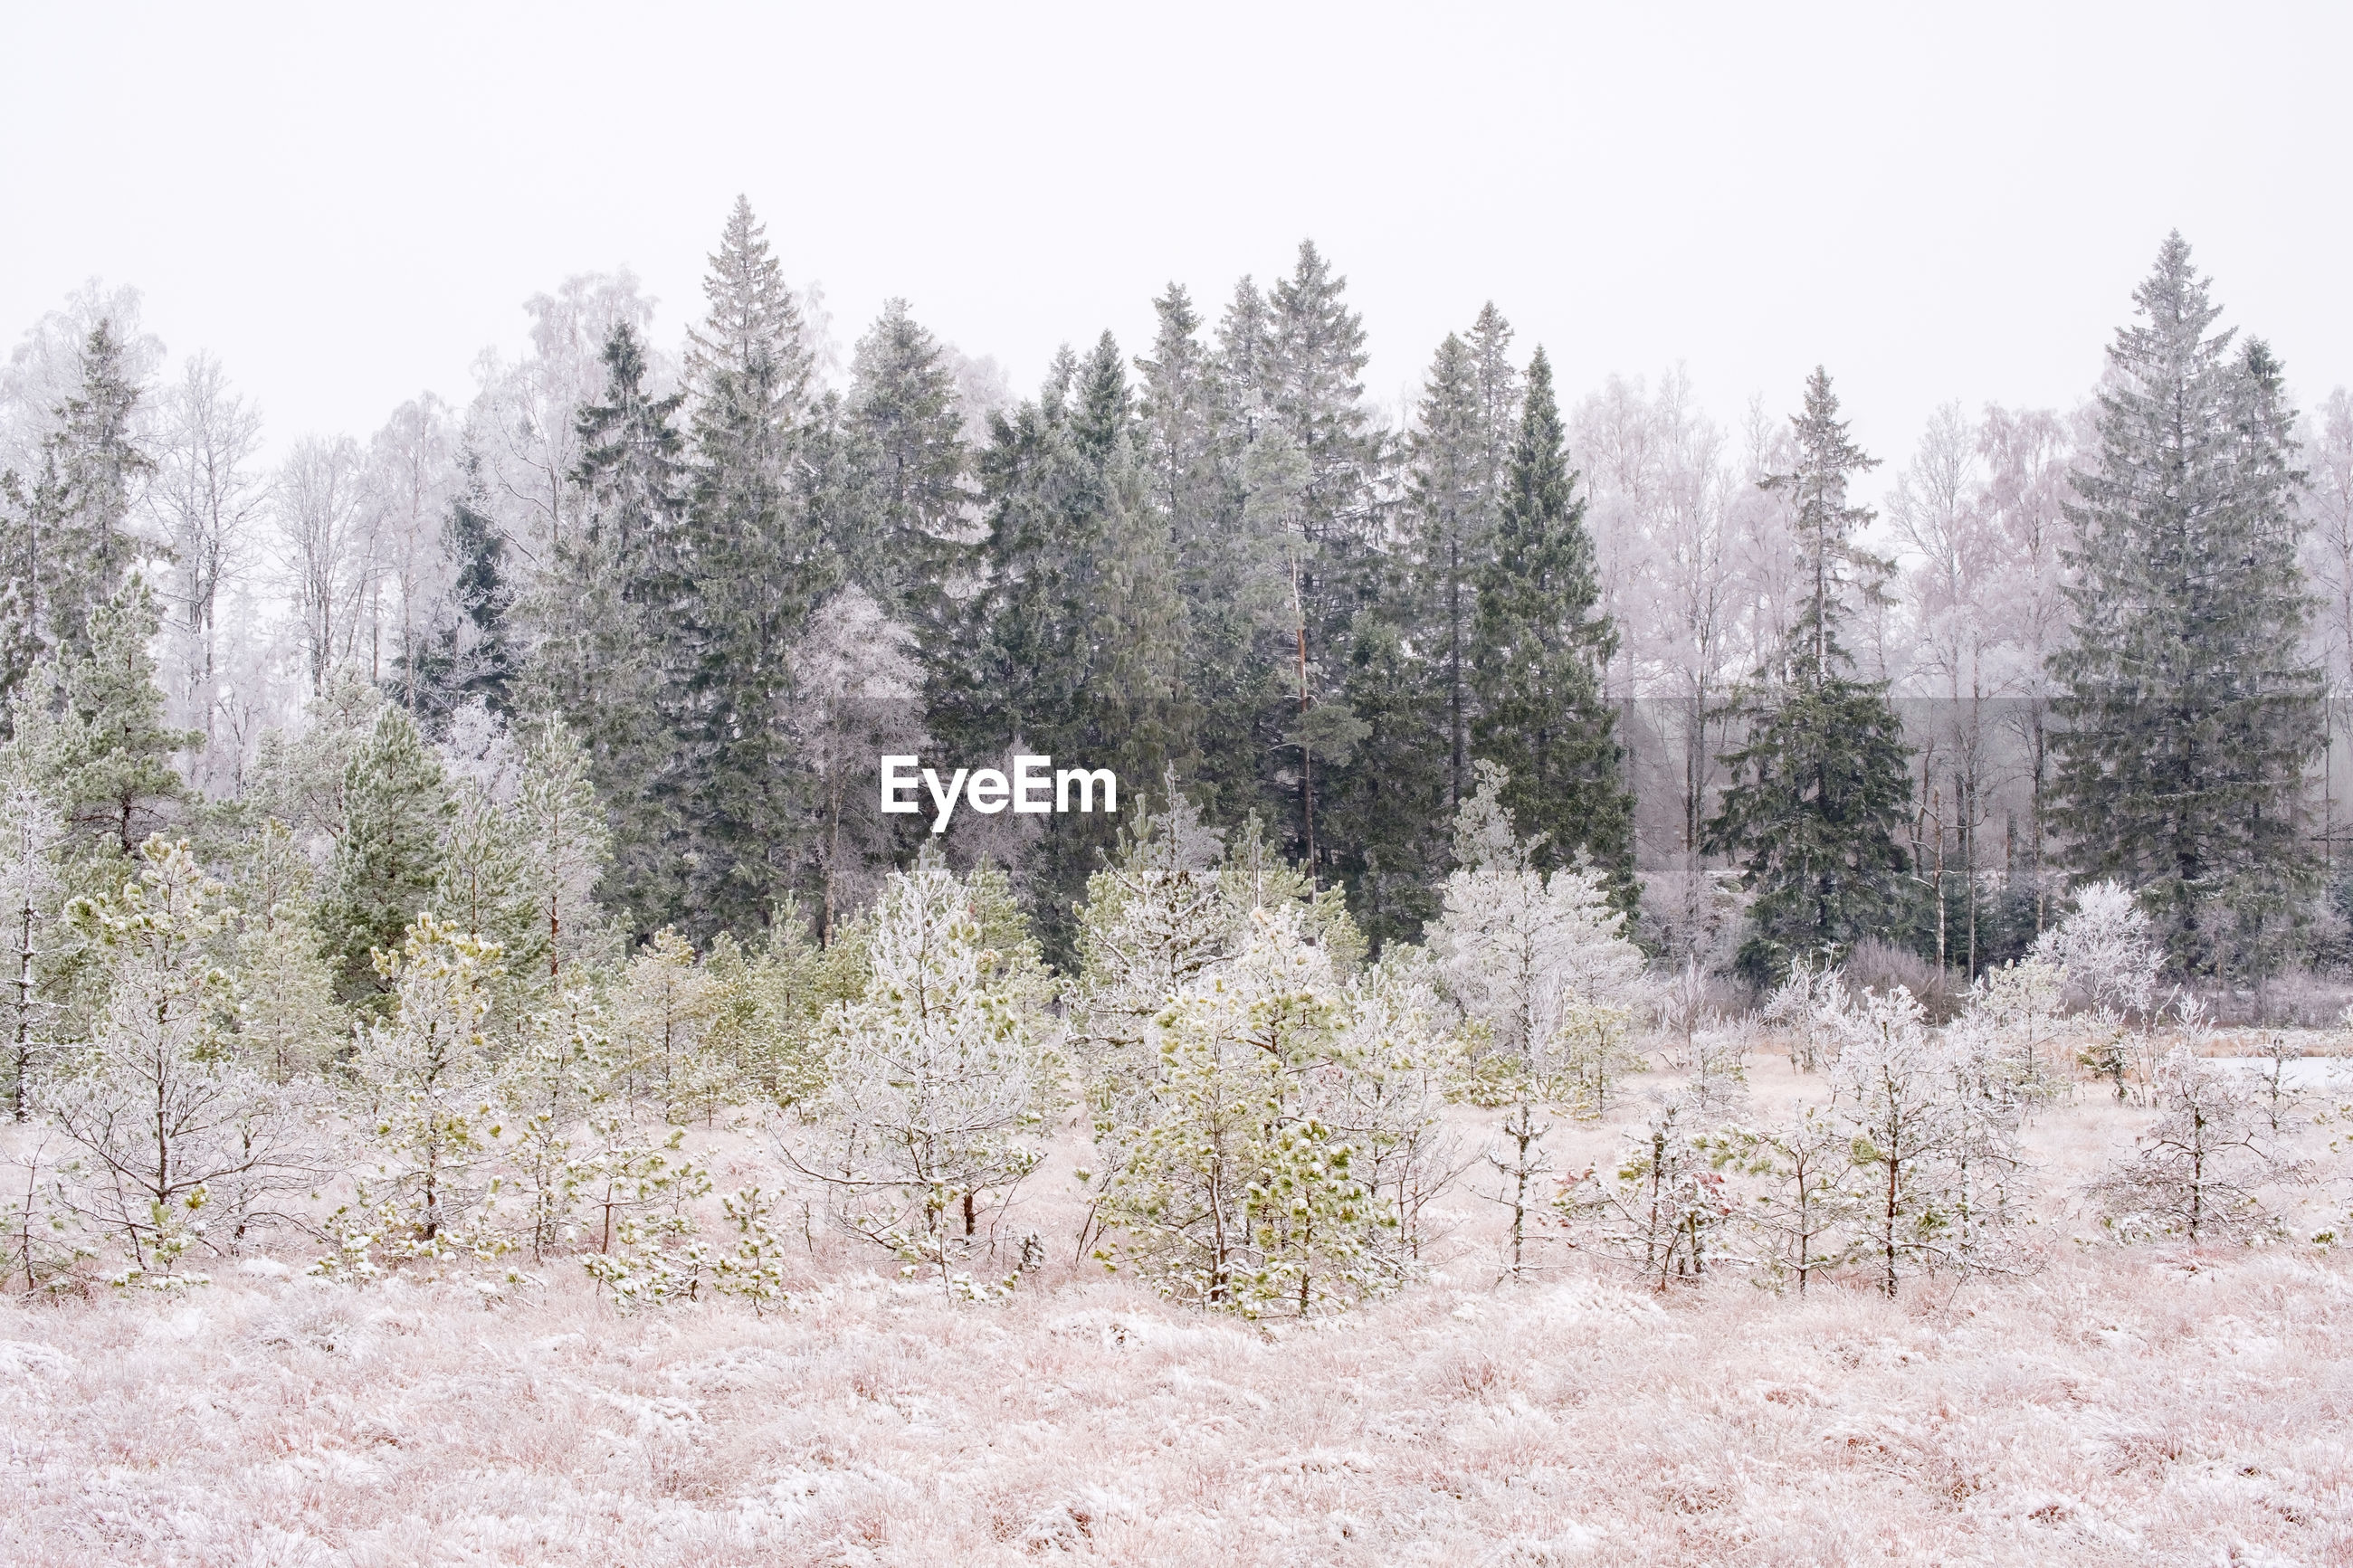 VIEW OF PINE TREES IN SNOW